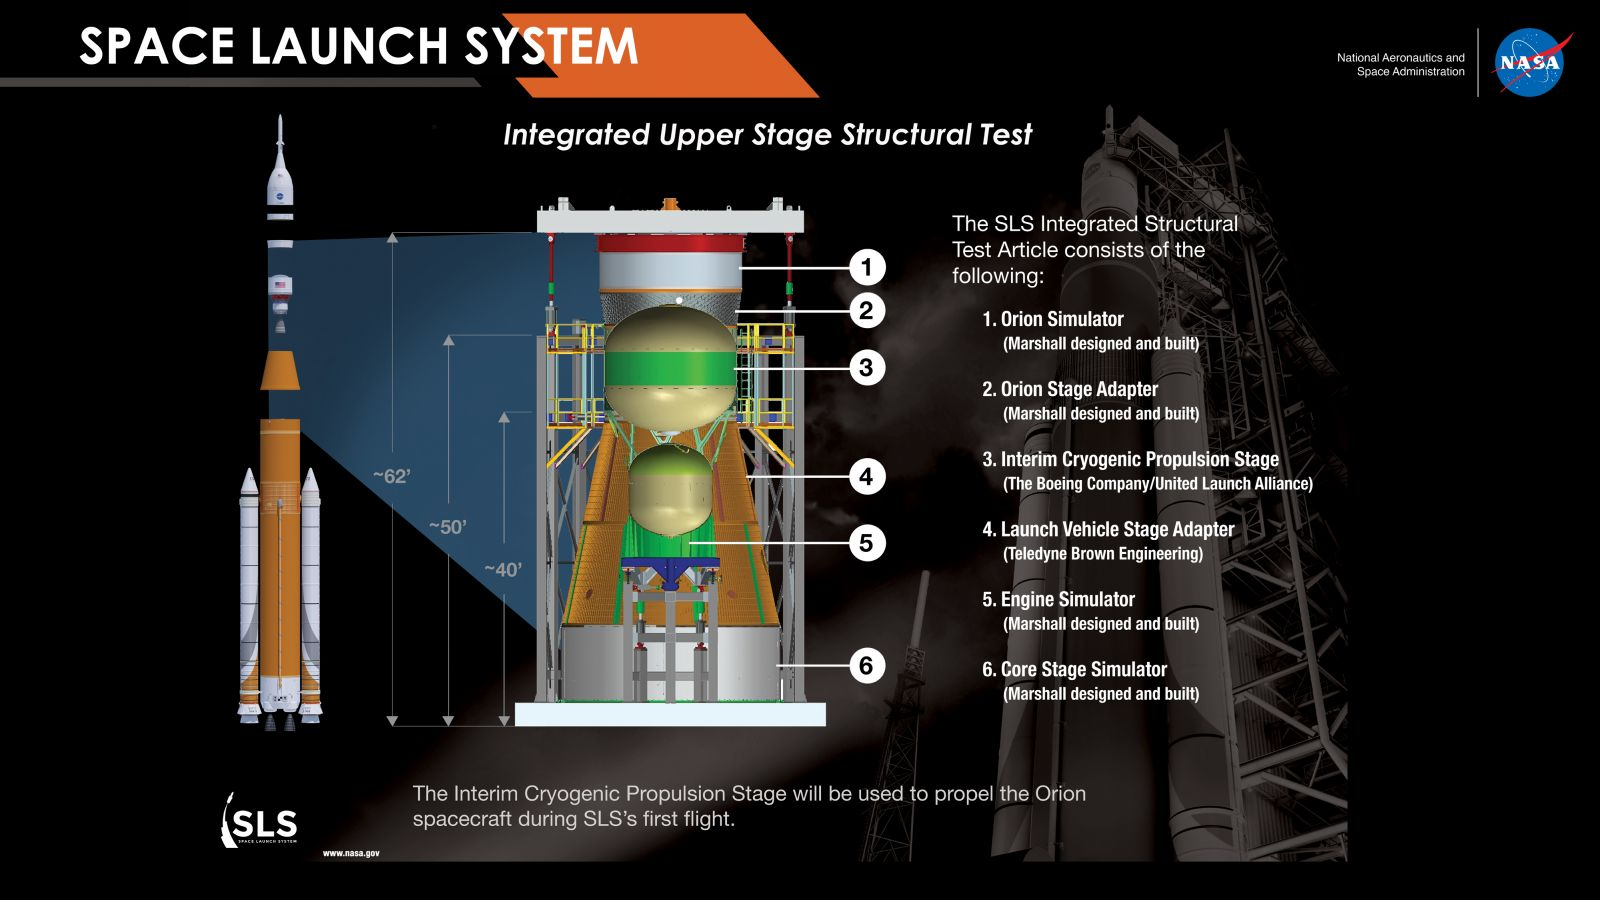 Space Launch System. Integrated Upper Stage Structural Test graphic. Image Credit: NASA